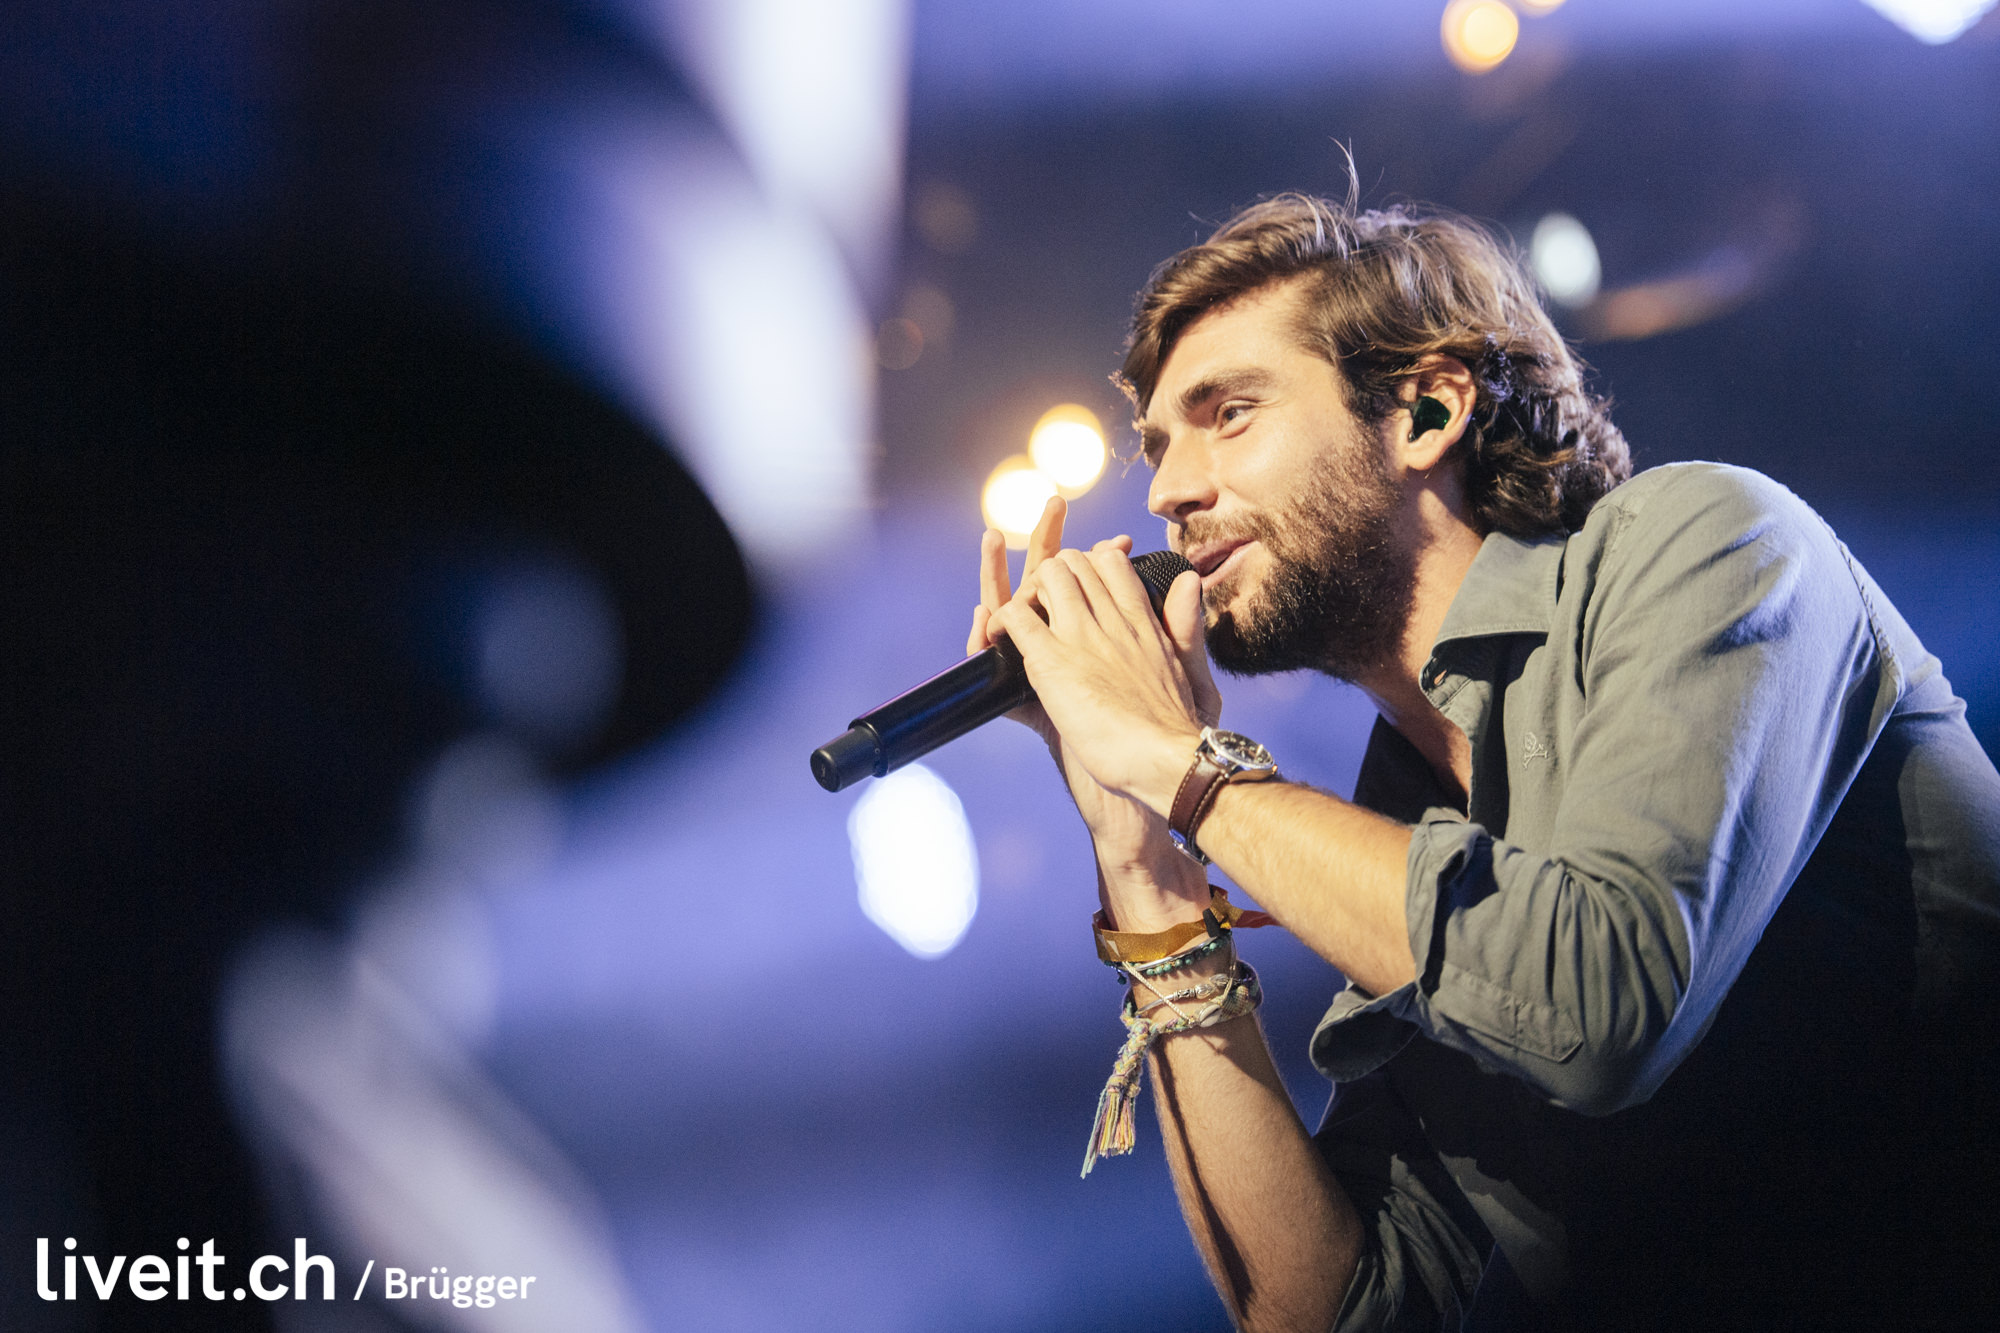 Alvaro Soler am Seaside Festival 2019